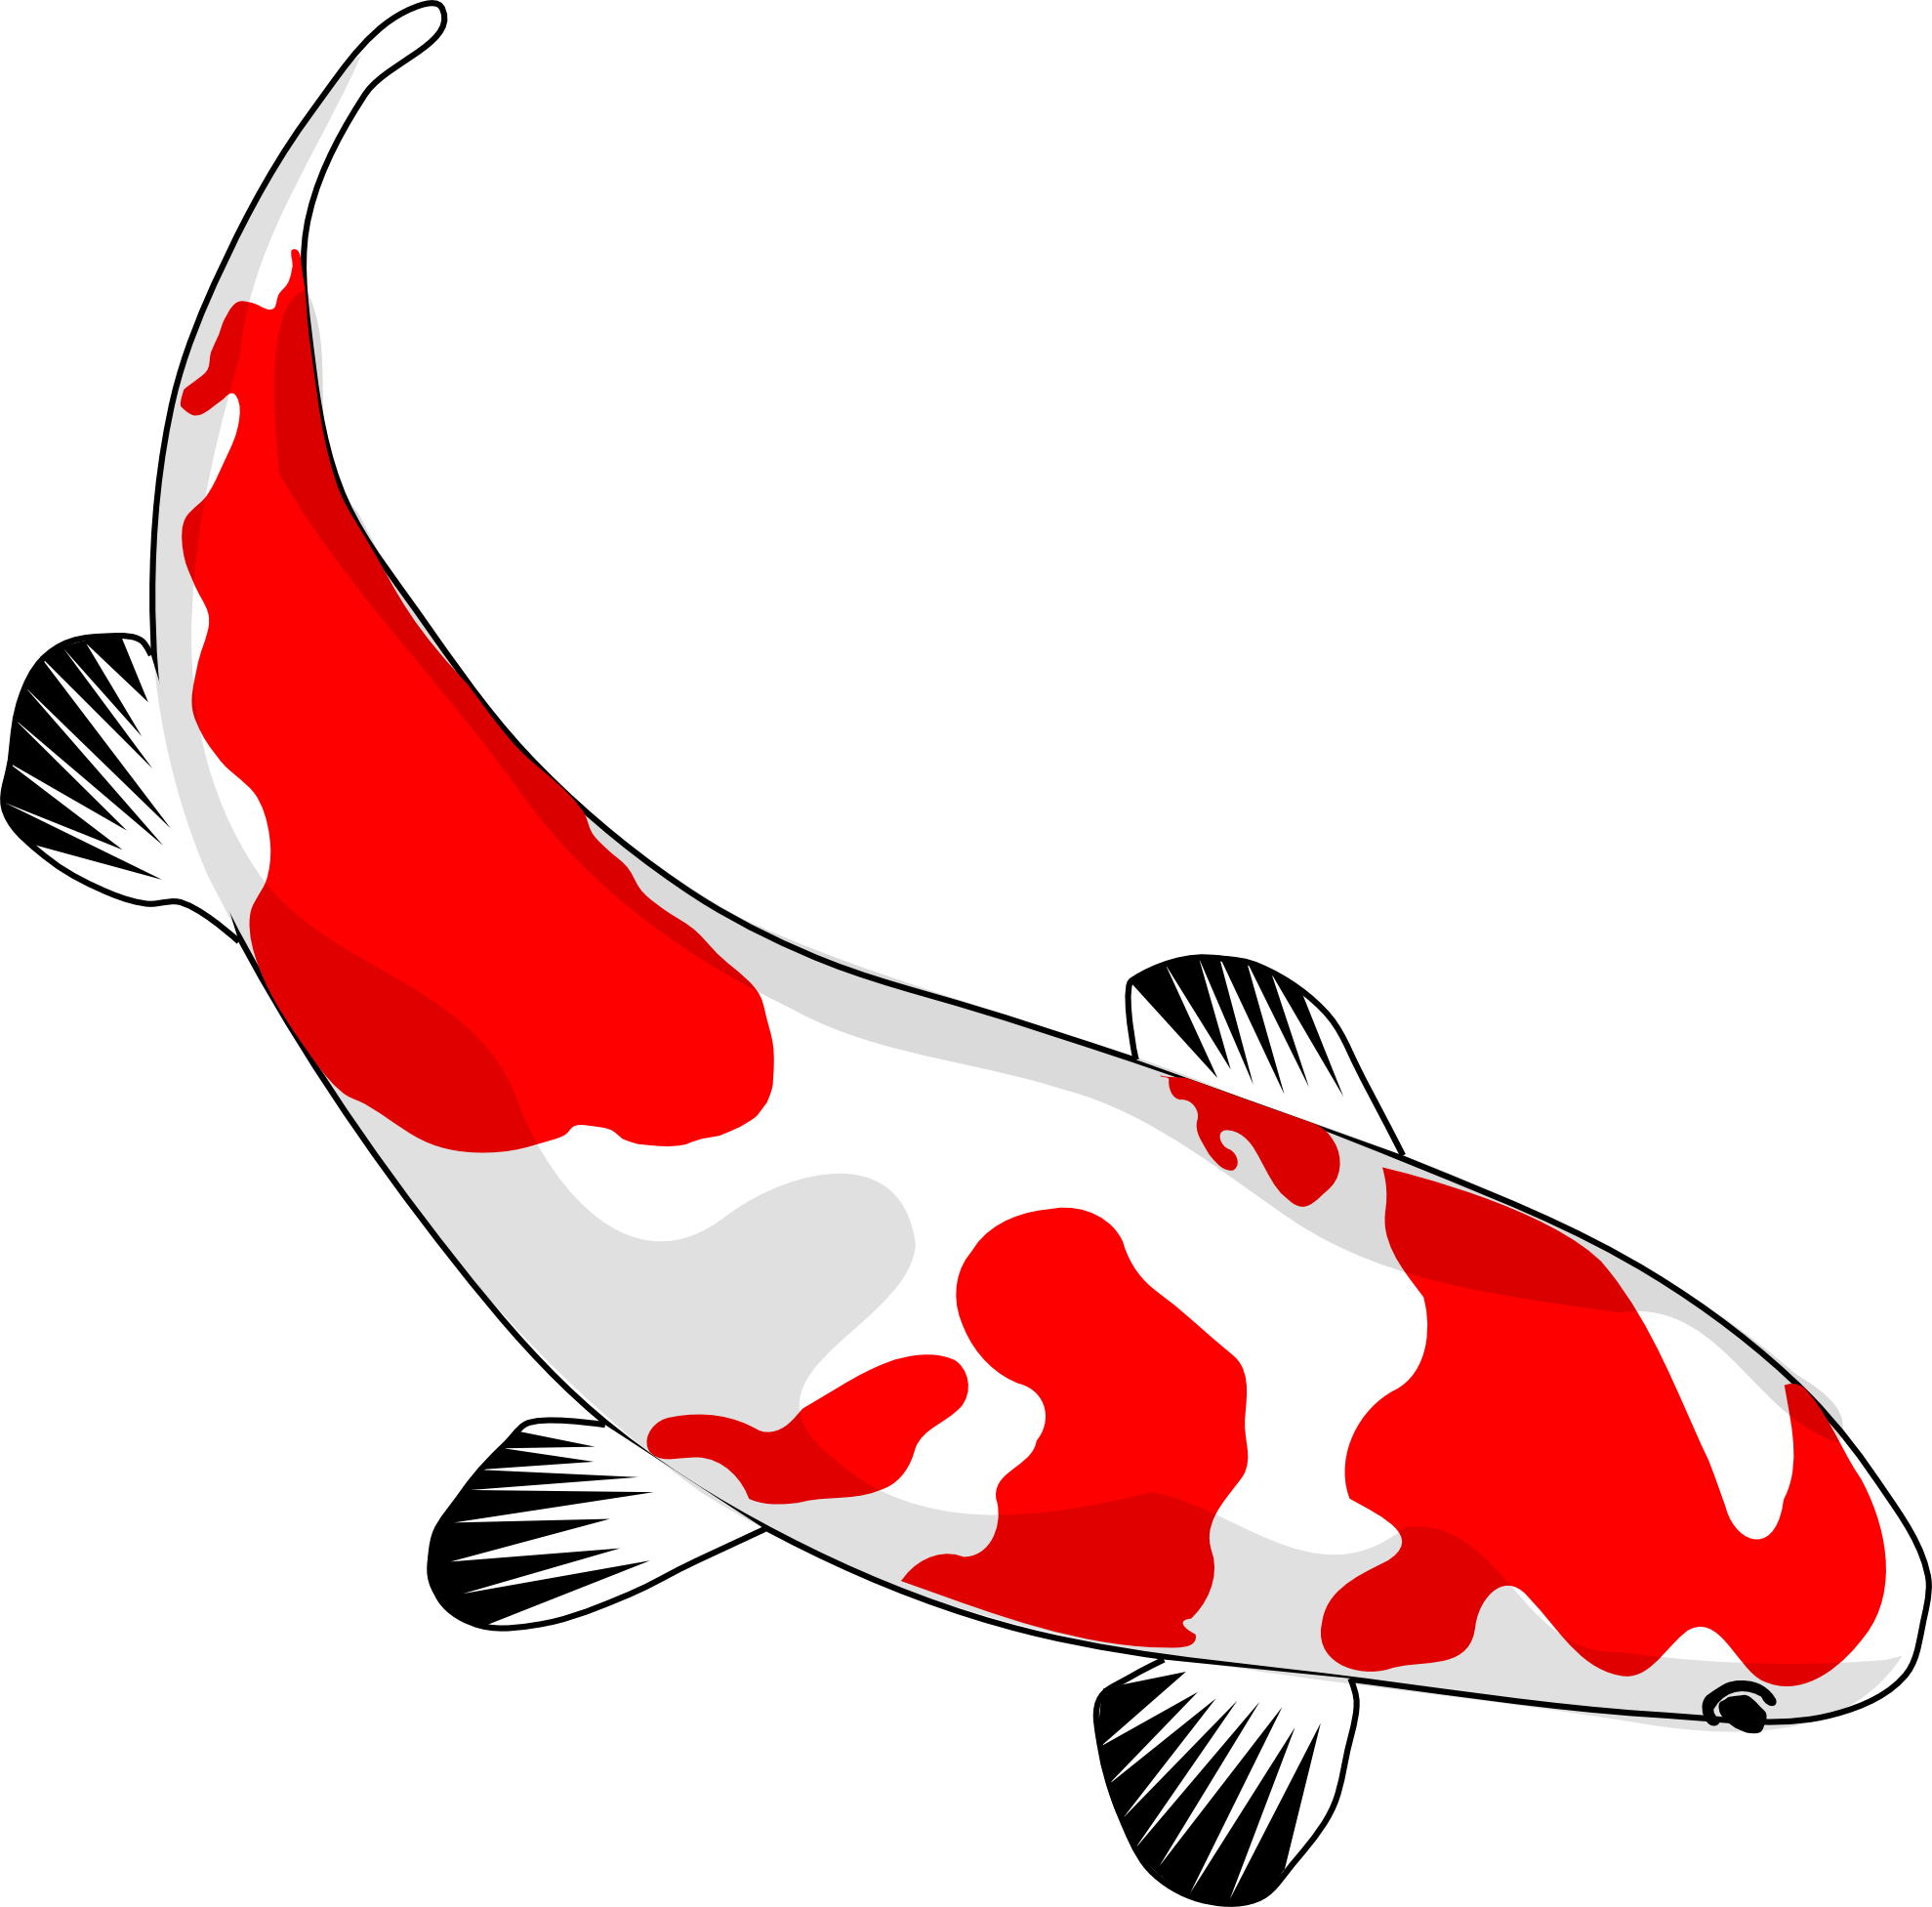 Aztec fish clipart banner transparent stock Japanese Koi Clipart at GetDrawings.com | Free for personal use ... banner transparent stock